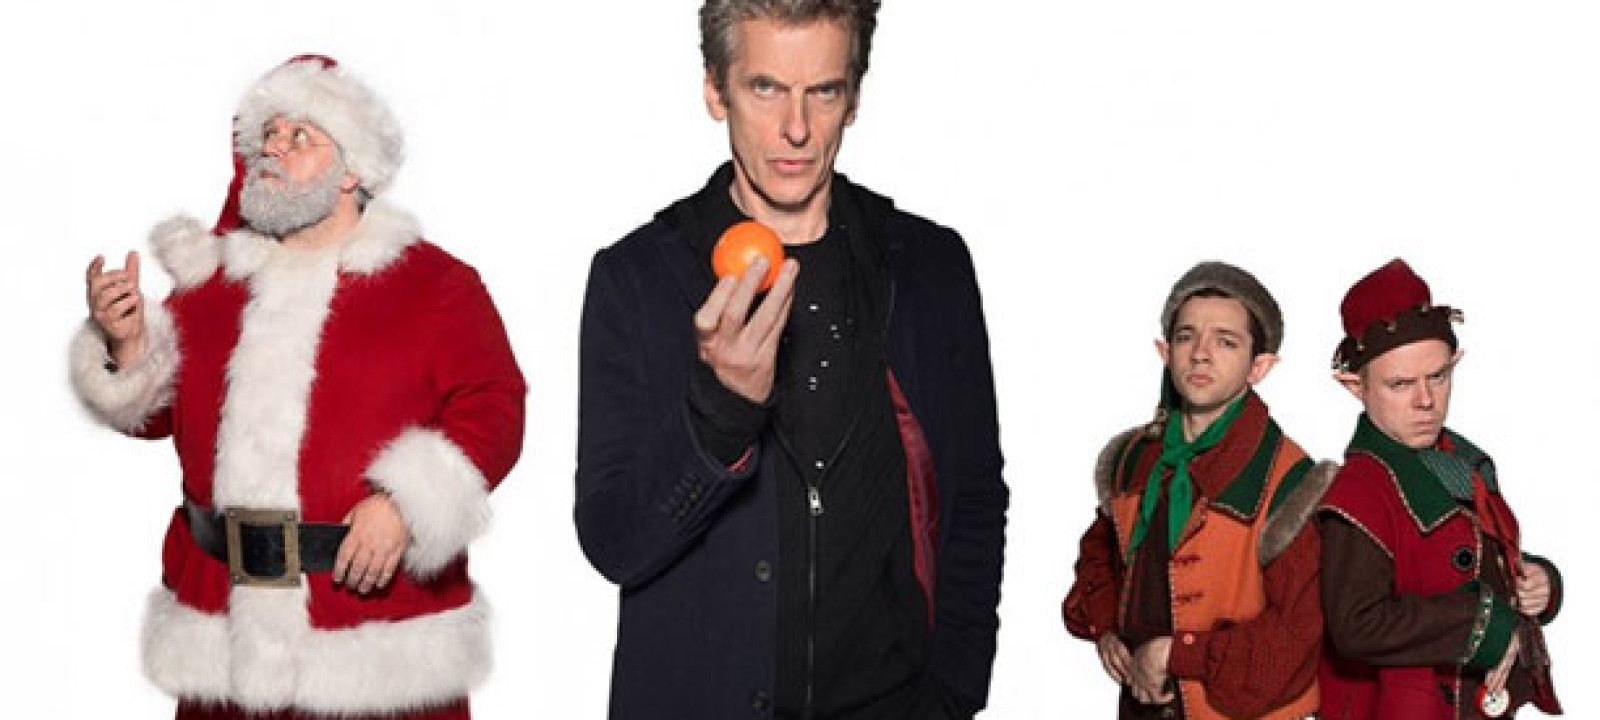 Doctor Who Last Christmas.Doctor Who S Day Roundup The Last Before Last Christmas